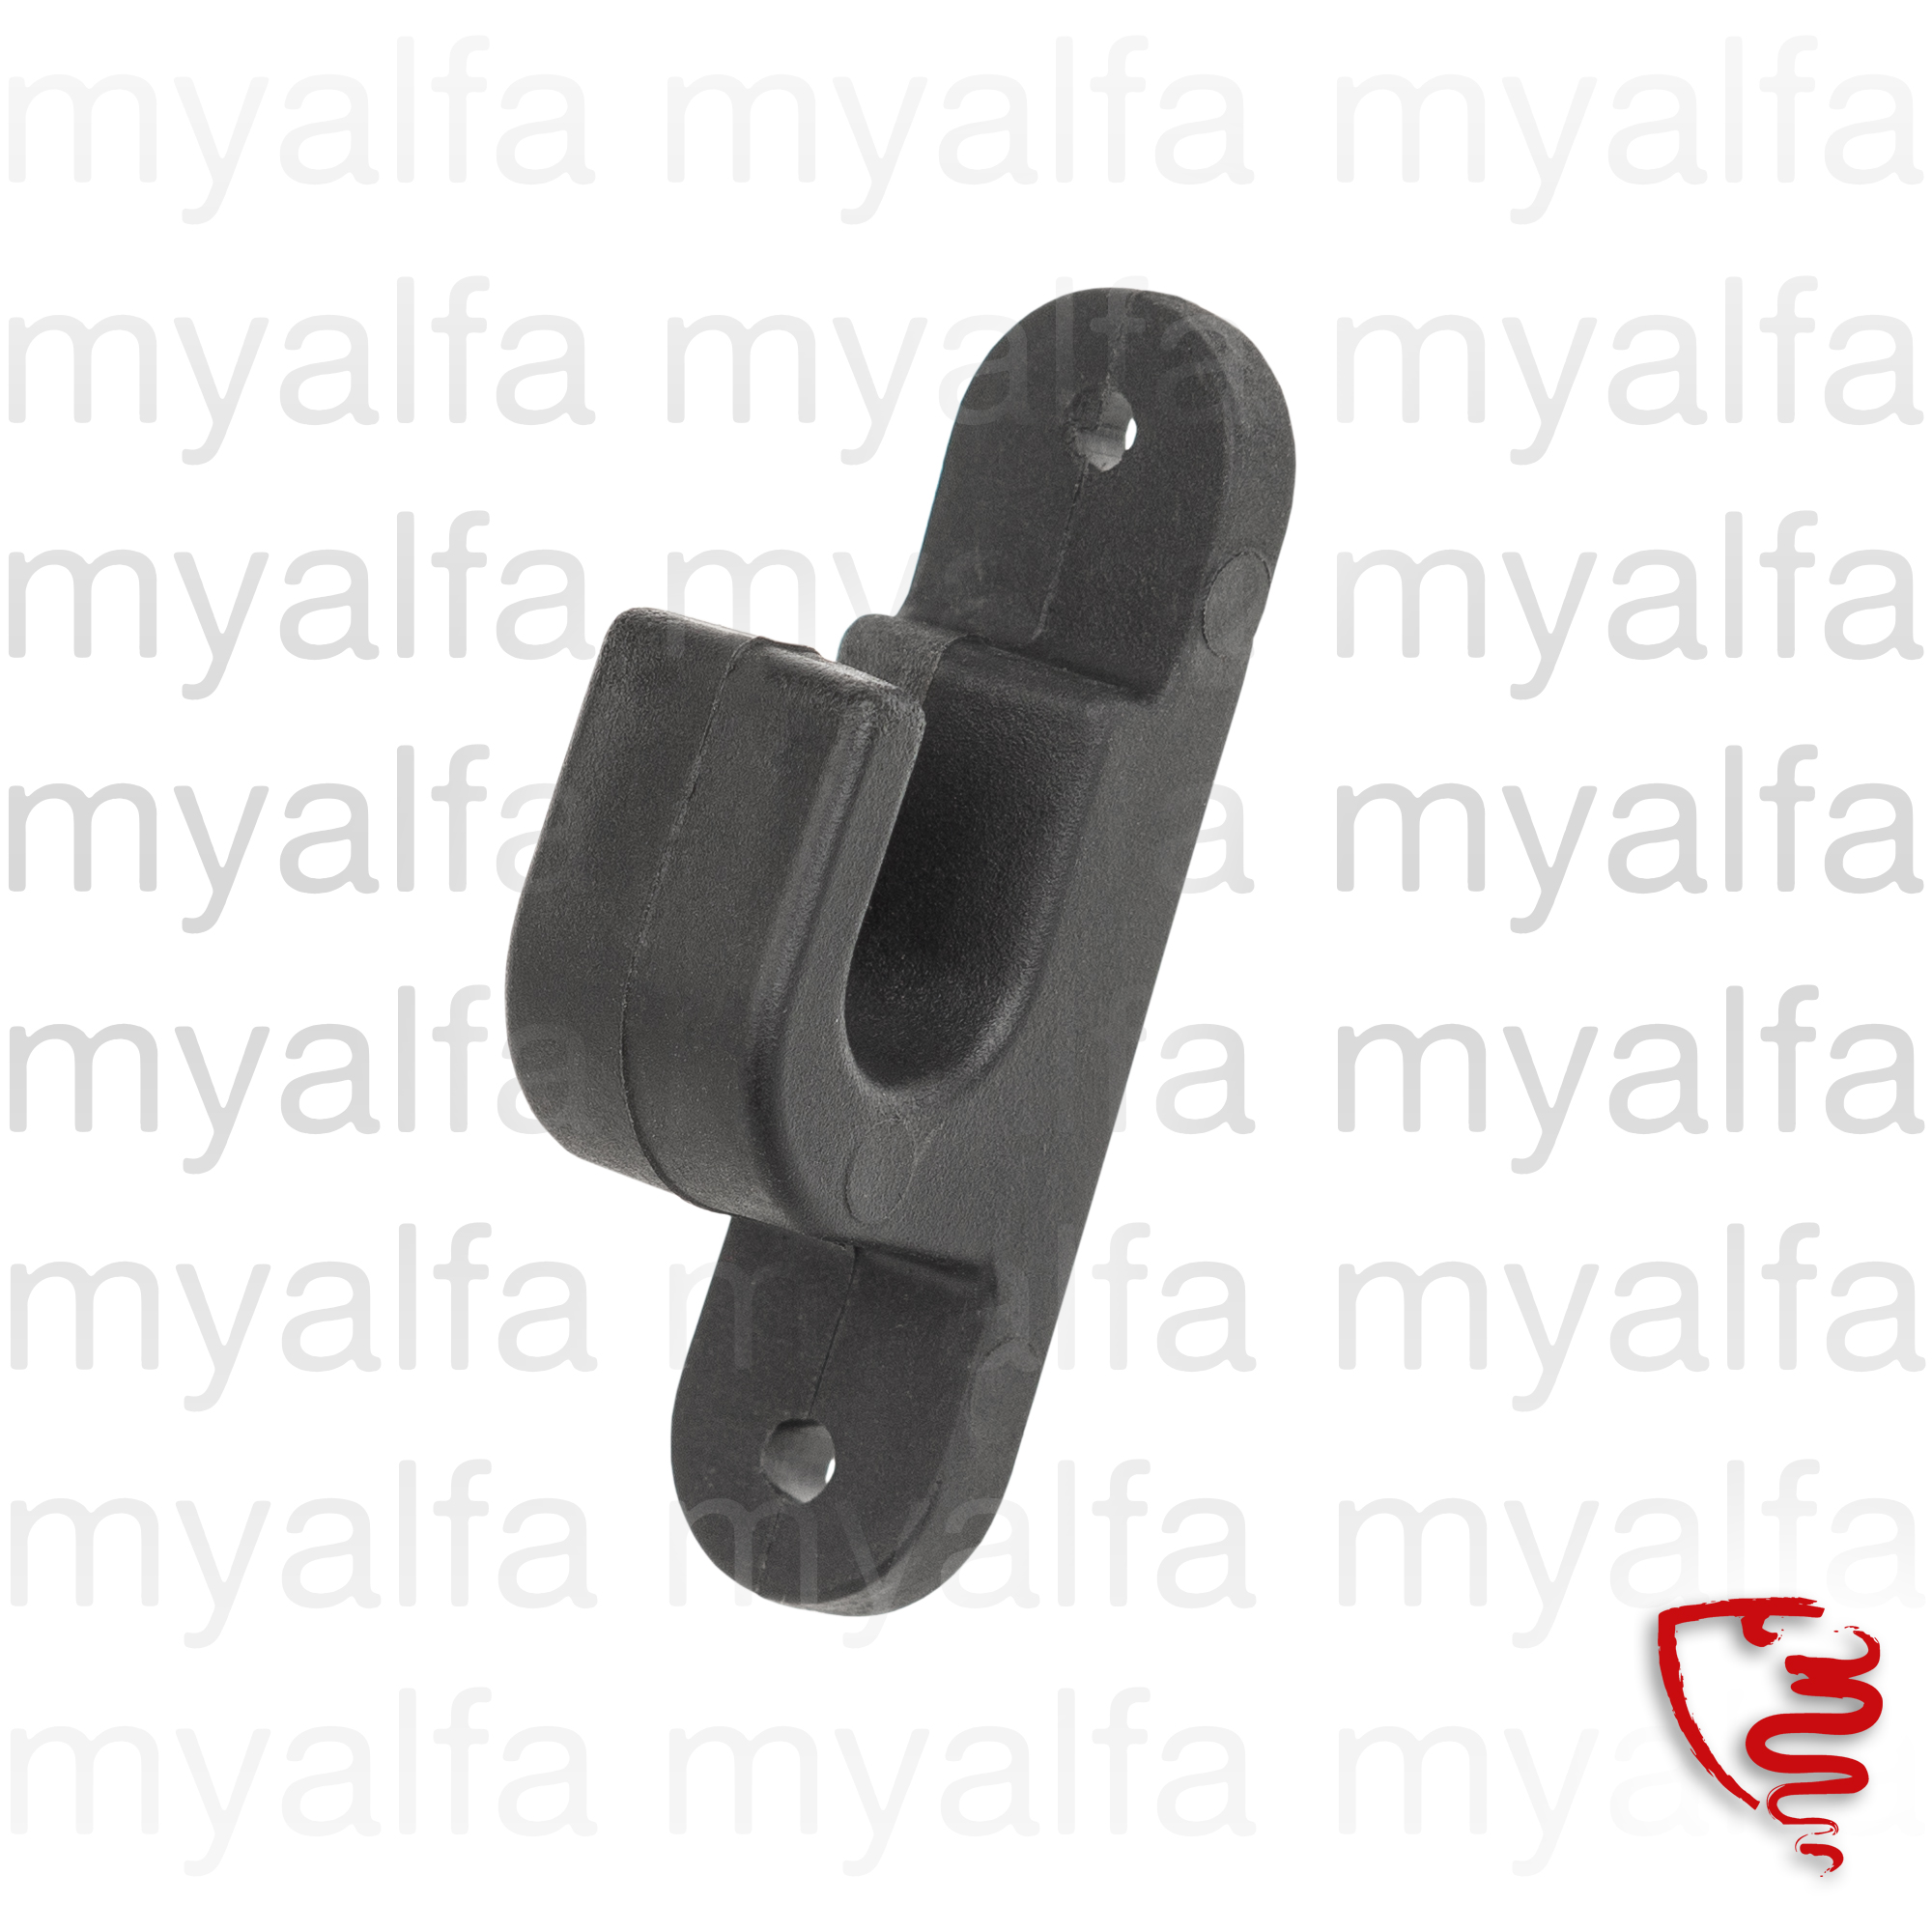 Support bonnet rod 105/115 for 105/115, Body parts, Panels, Engine compartment